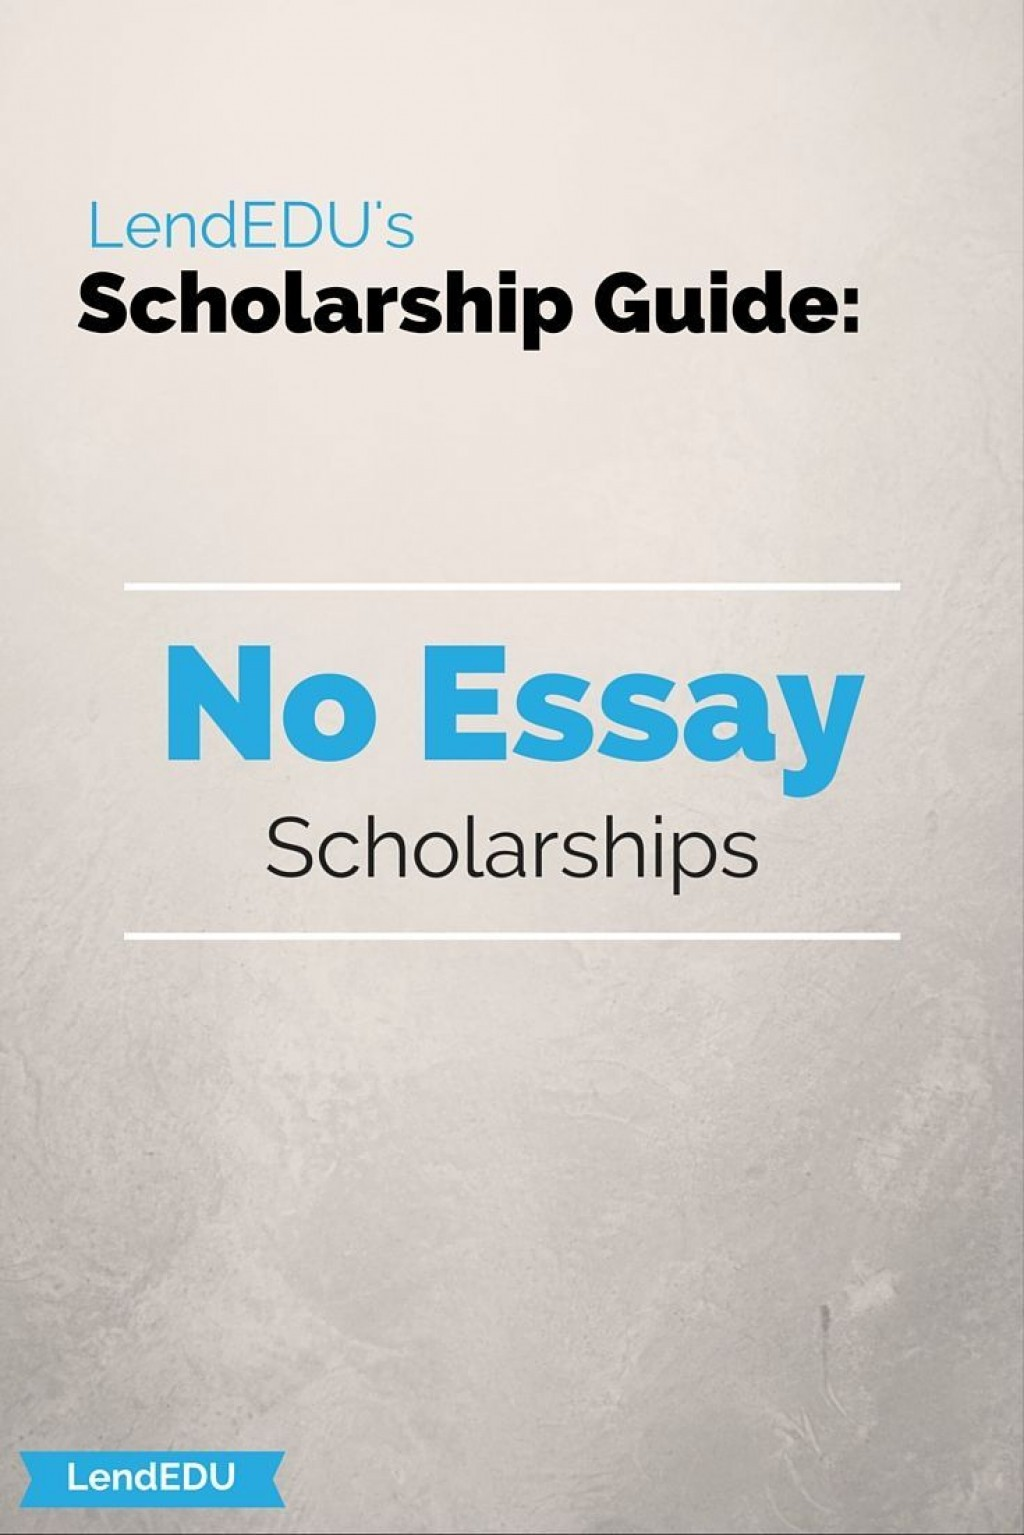 009 Essay Example Non Imposing Scholarships No For High School Seniors 2019 College Students 2017 Large